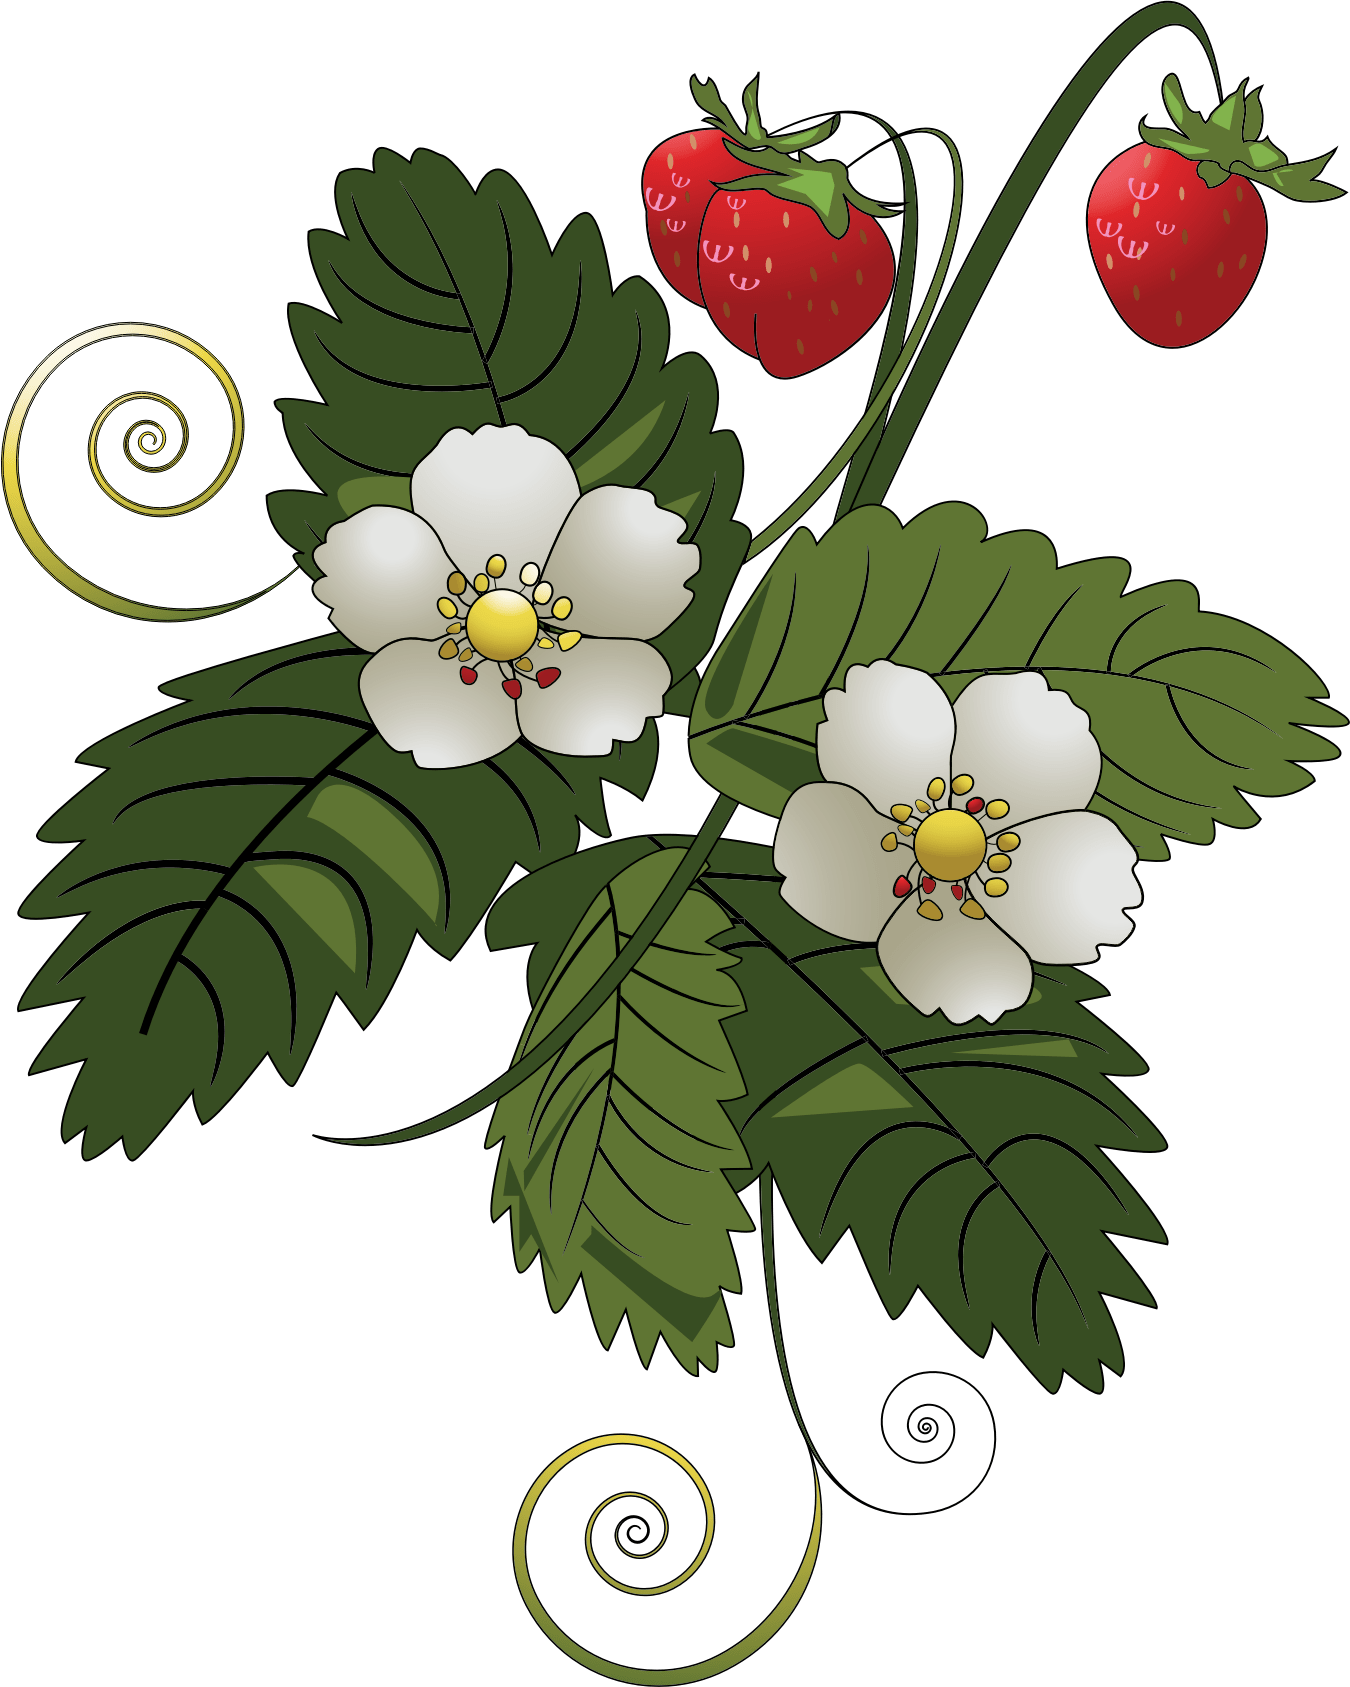 hight resolution of strawberry big image png plant clipart fruit plant banner freeuse